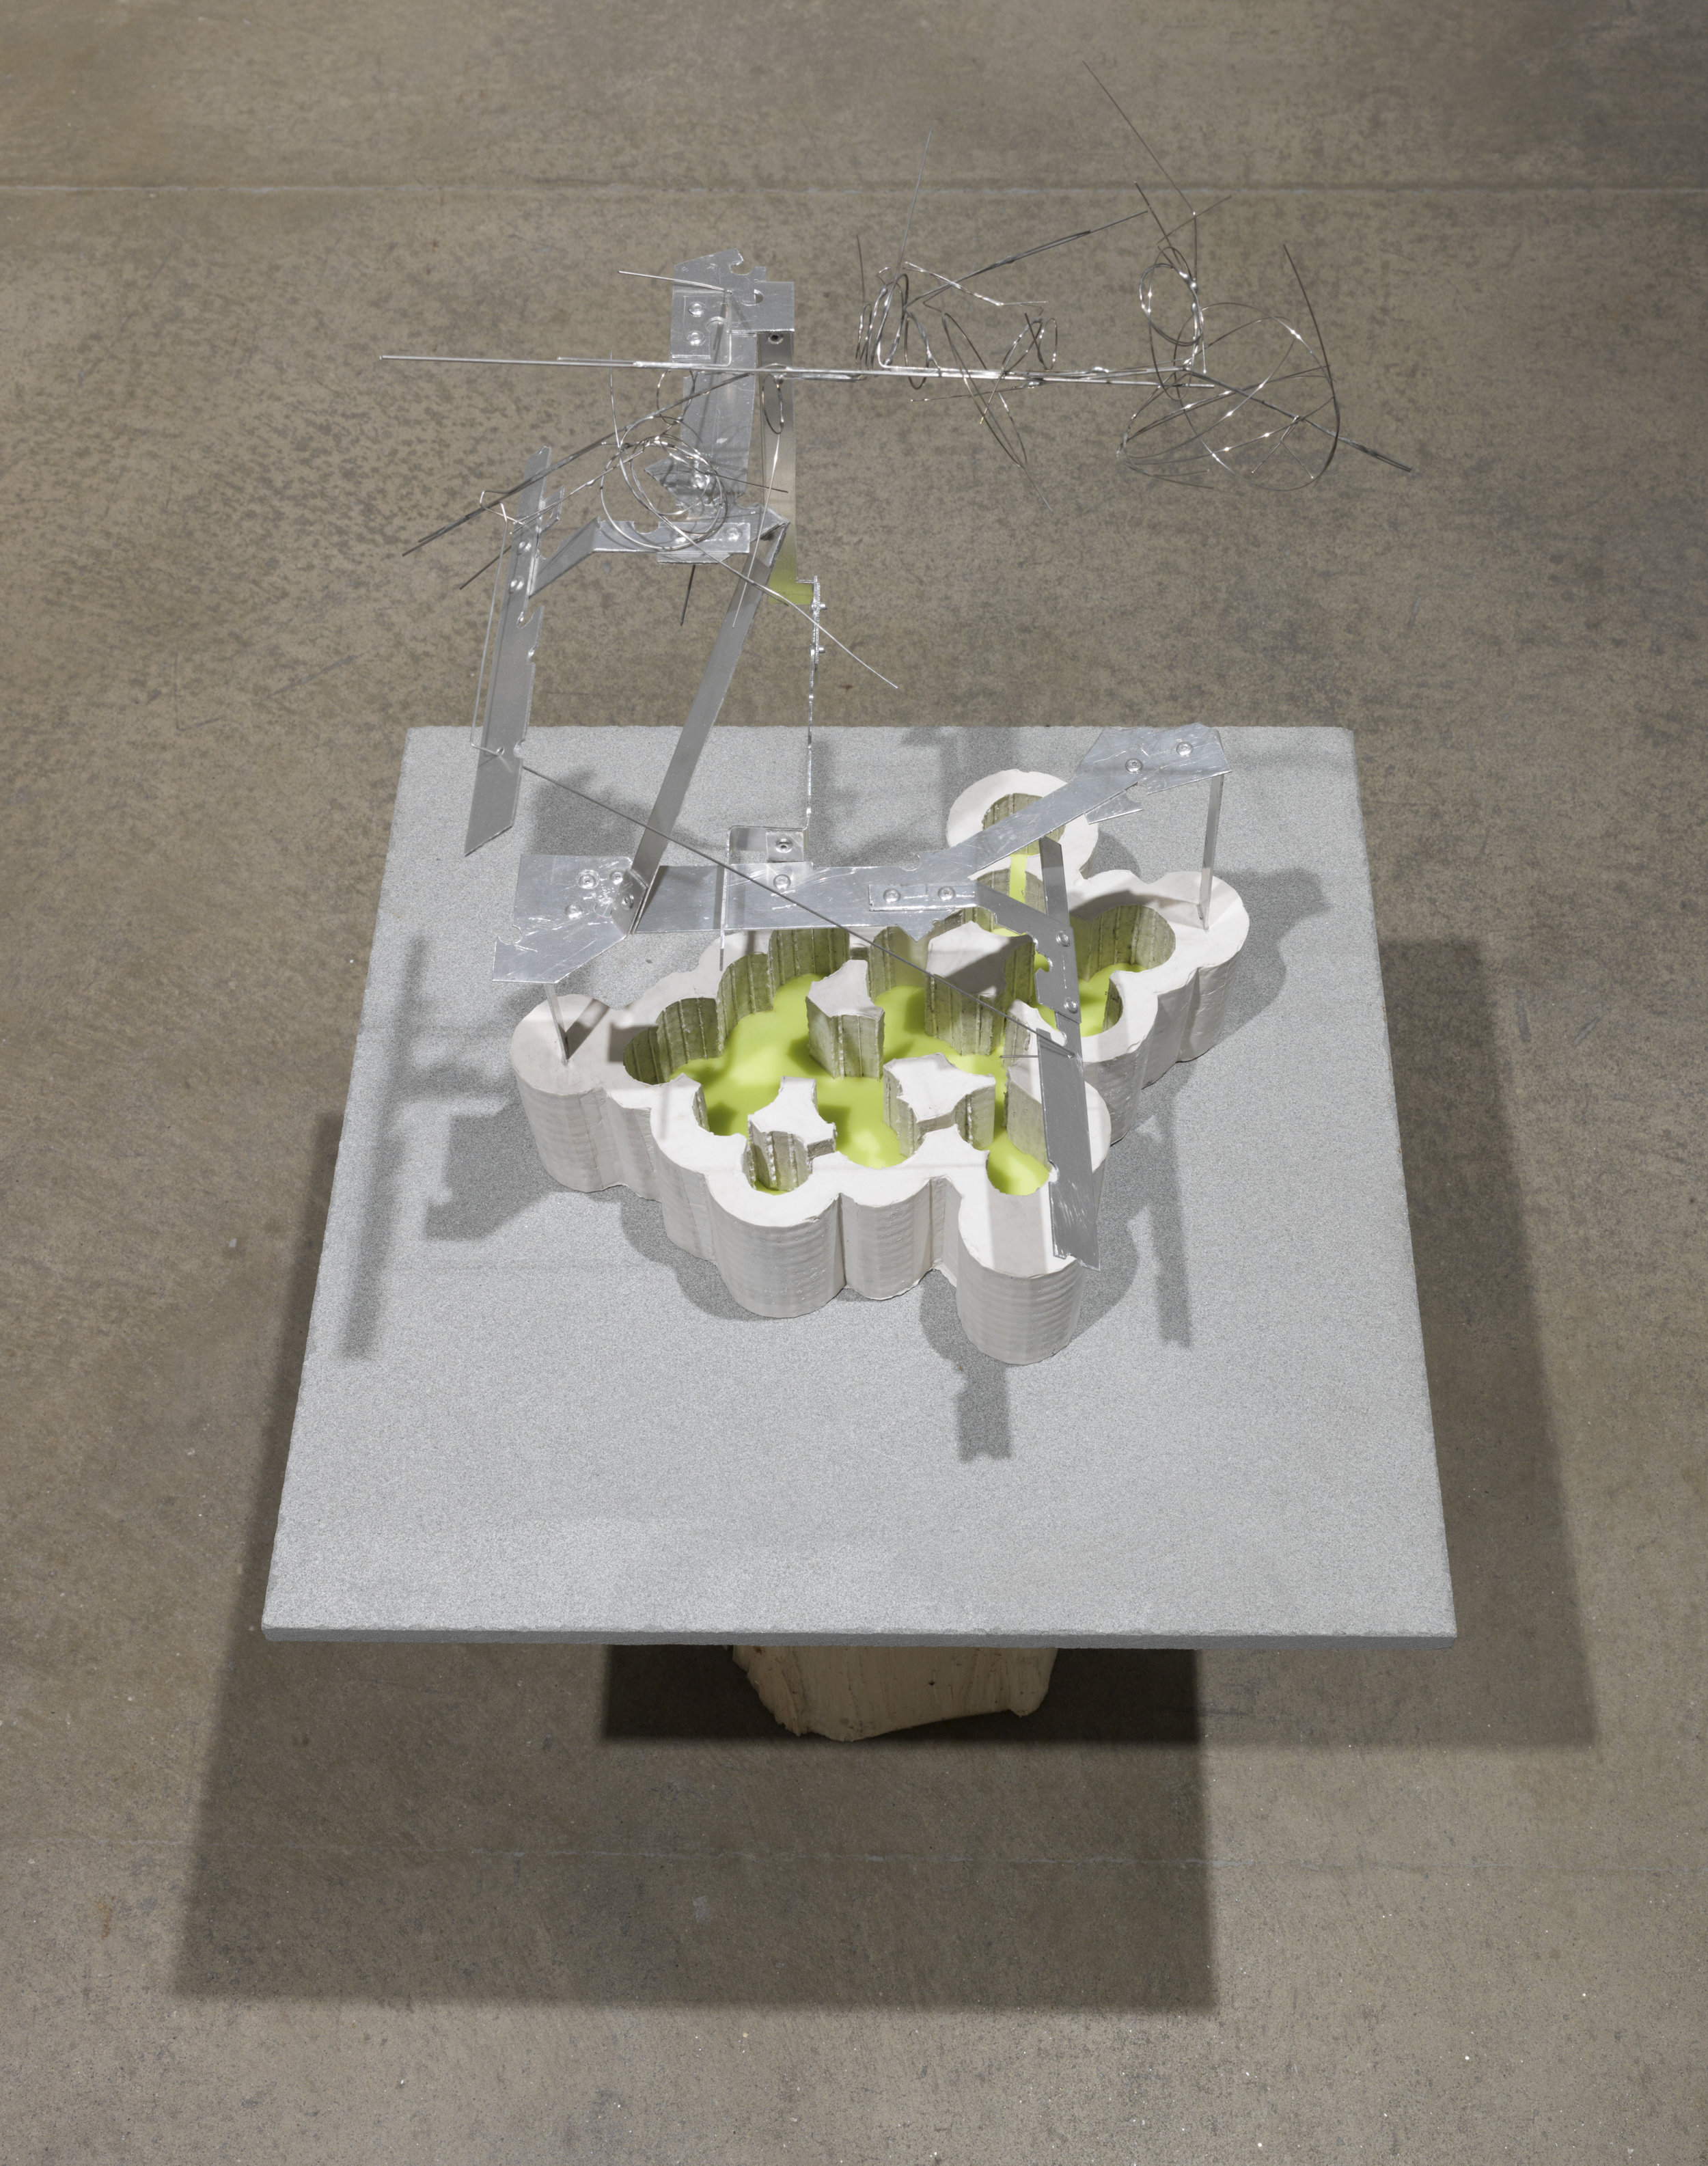 green cenote , 2017 hydrostone, aluminum, stainless steel wire, beeswax 18 x 12 x 12 inches